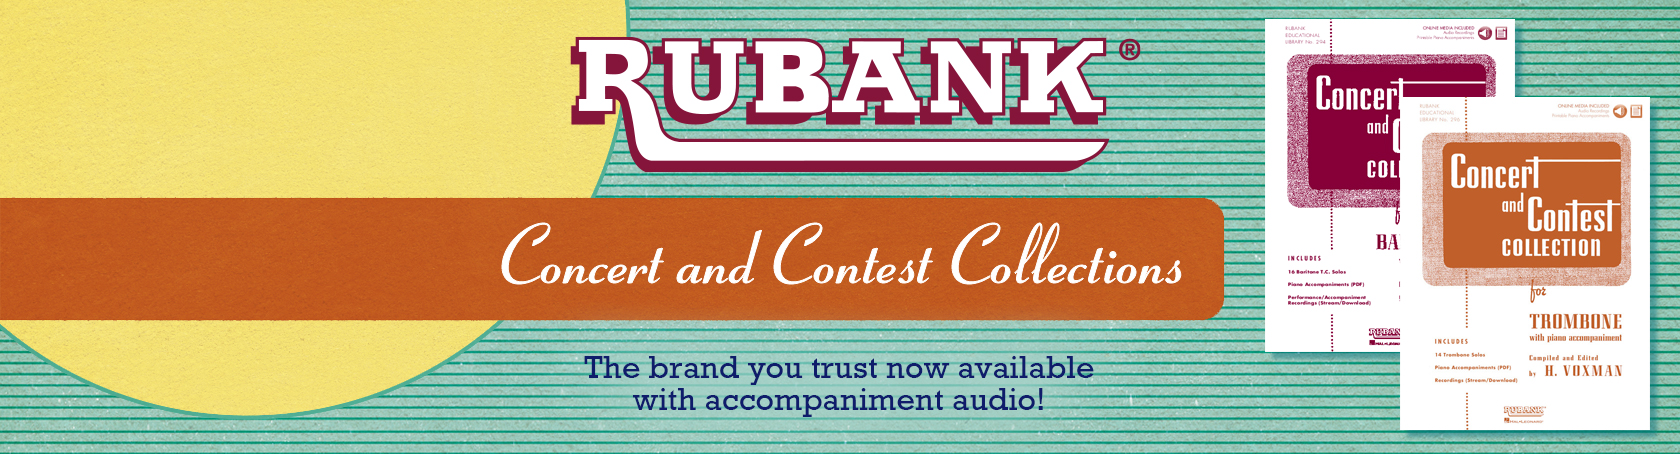 Rubank Concert & Contest Collections